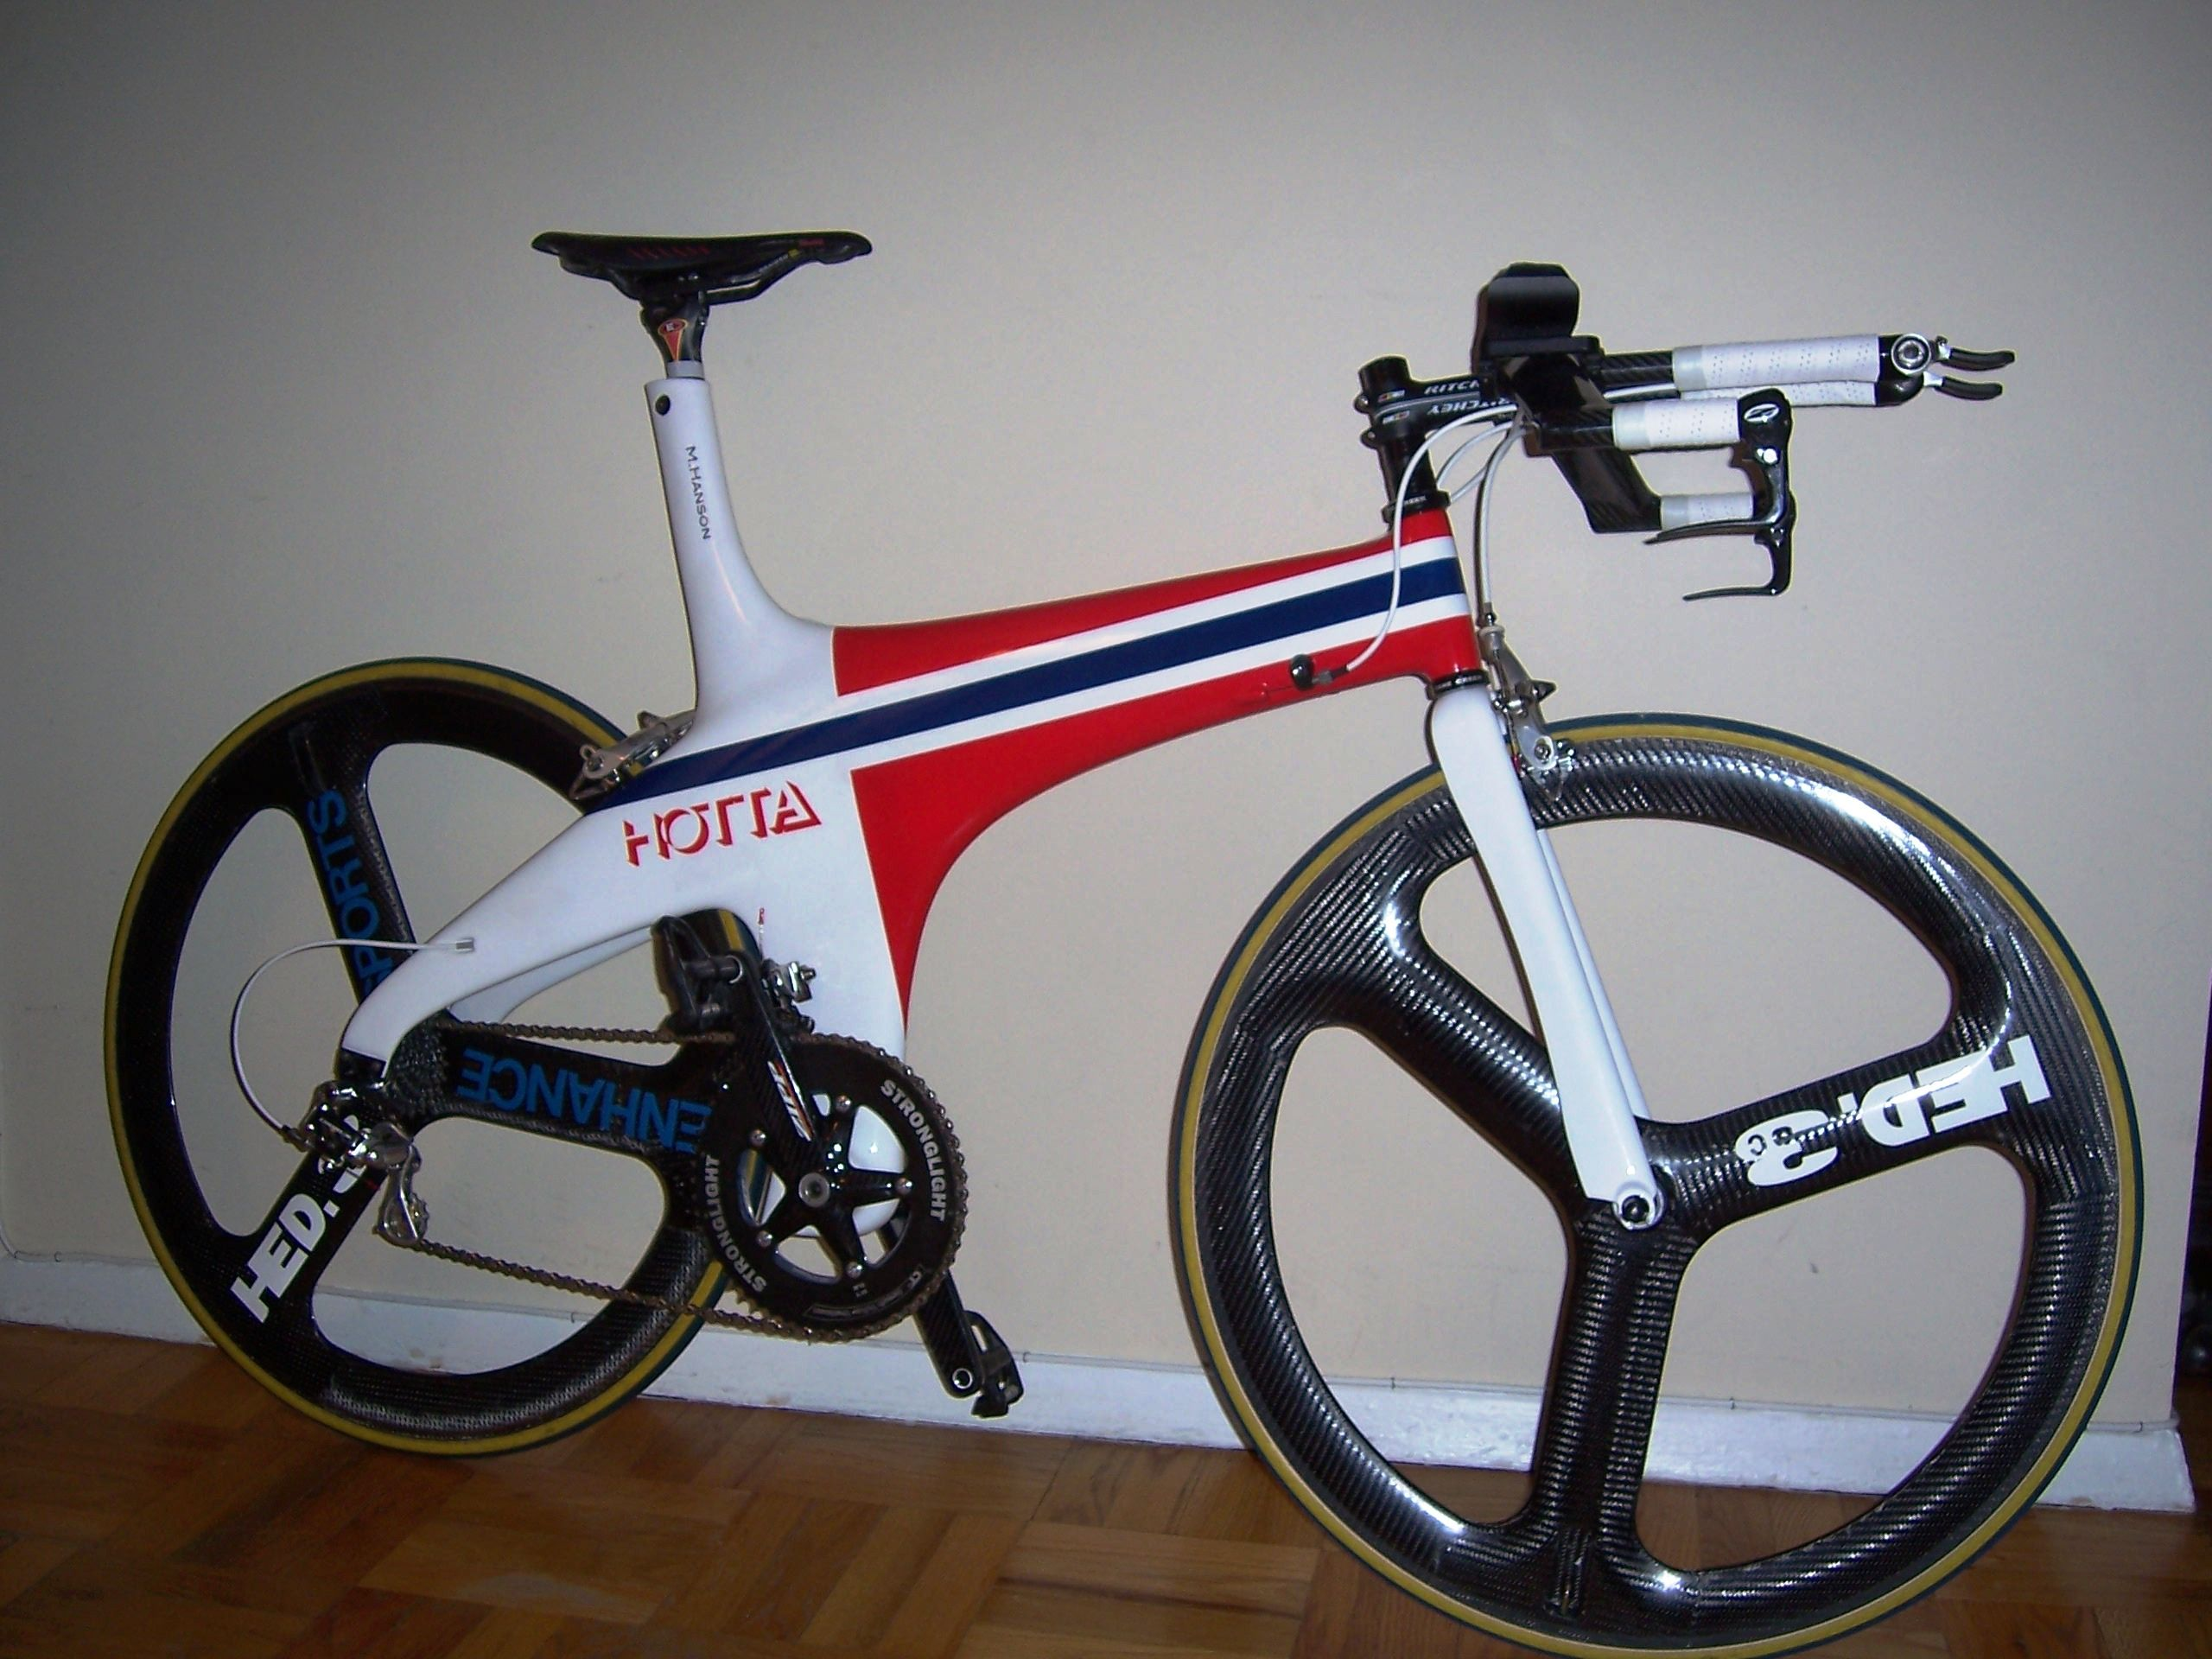 Hotta Bikes Google Search All Things Cycling Pinterest